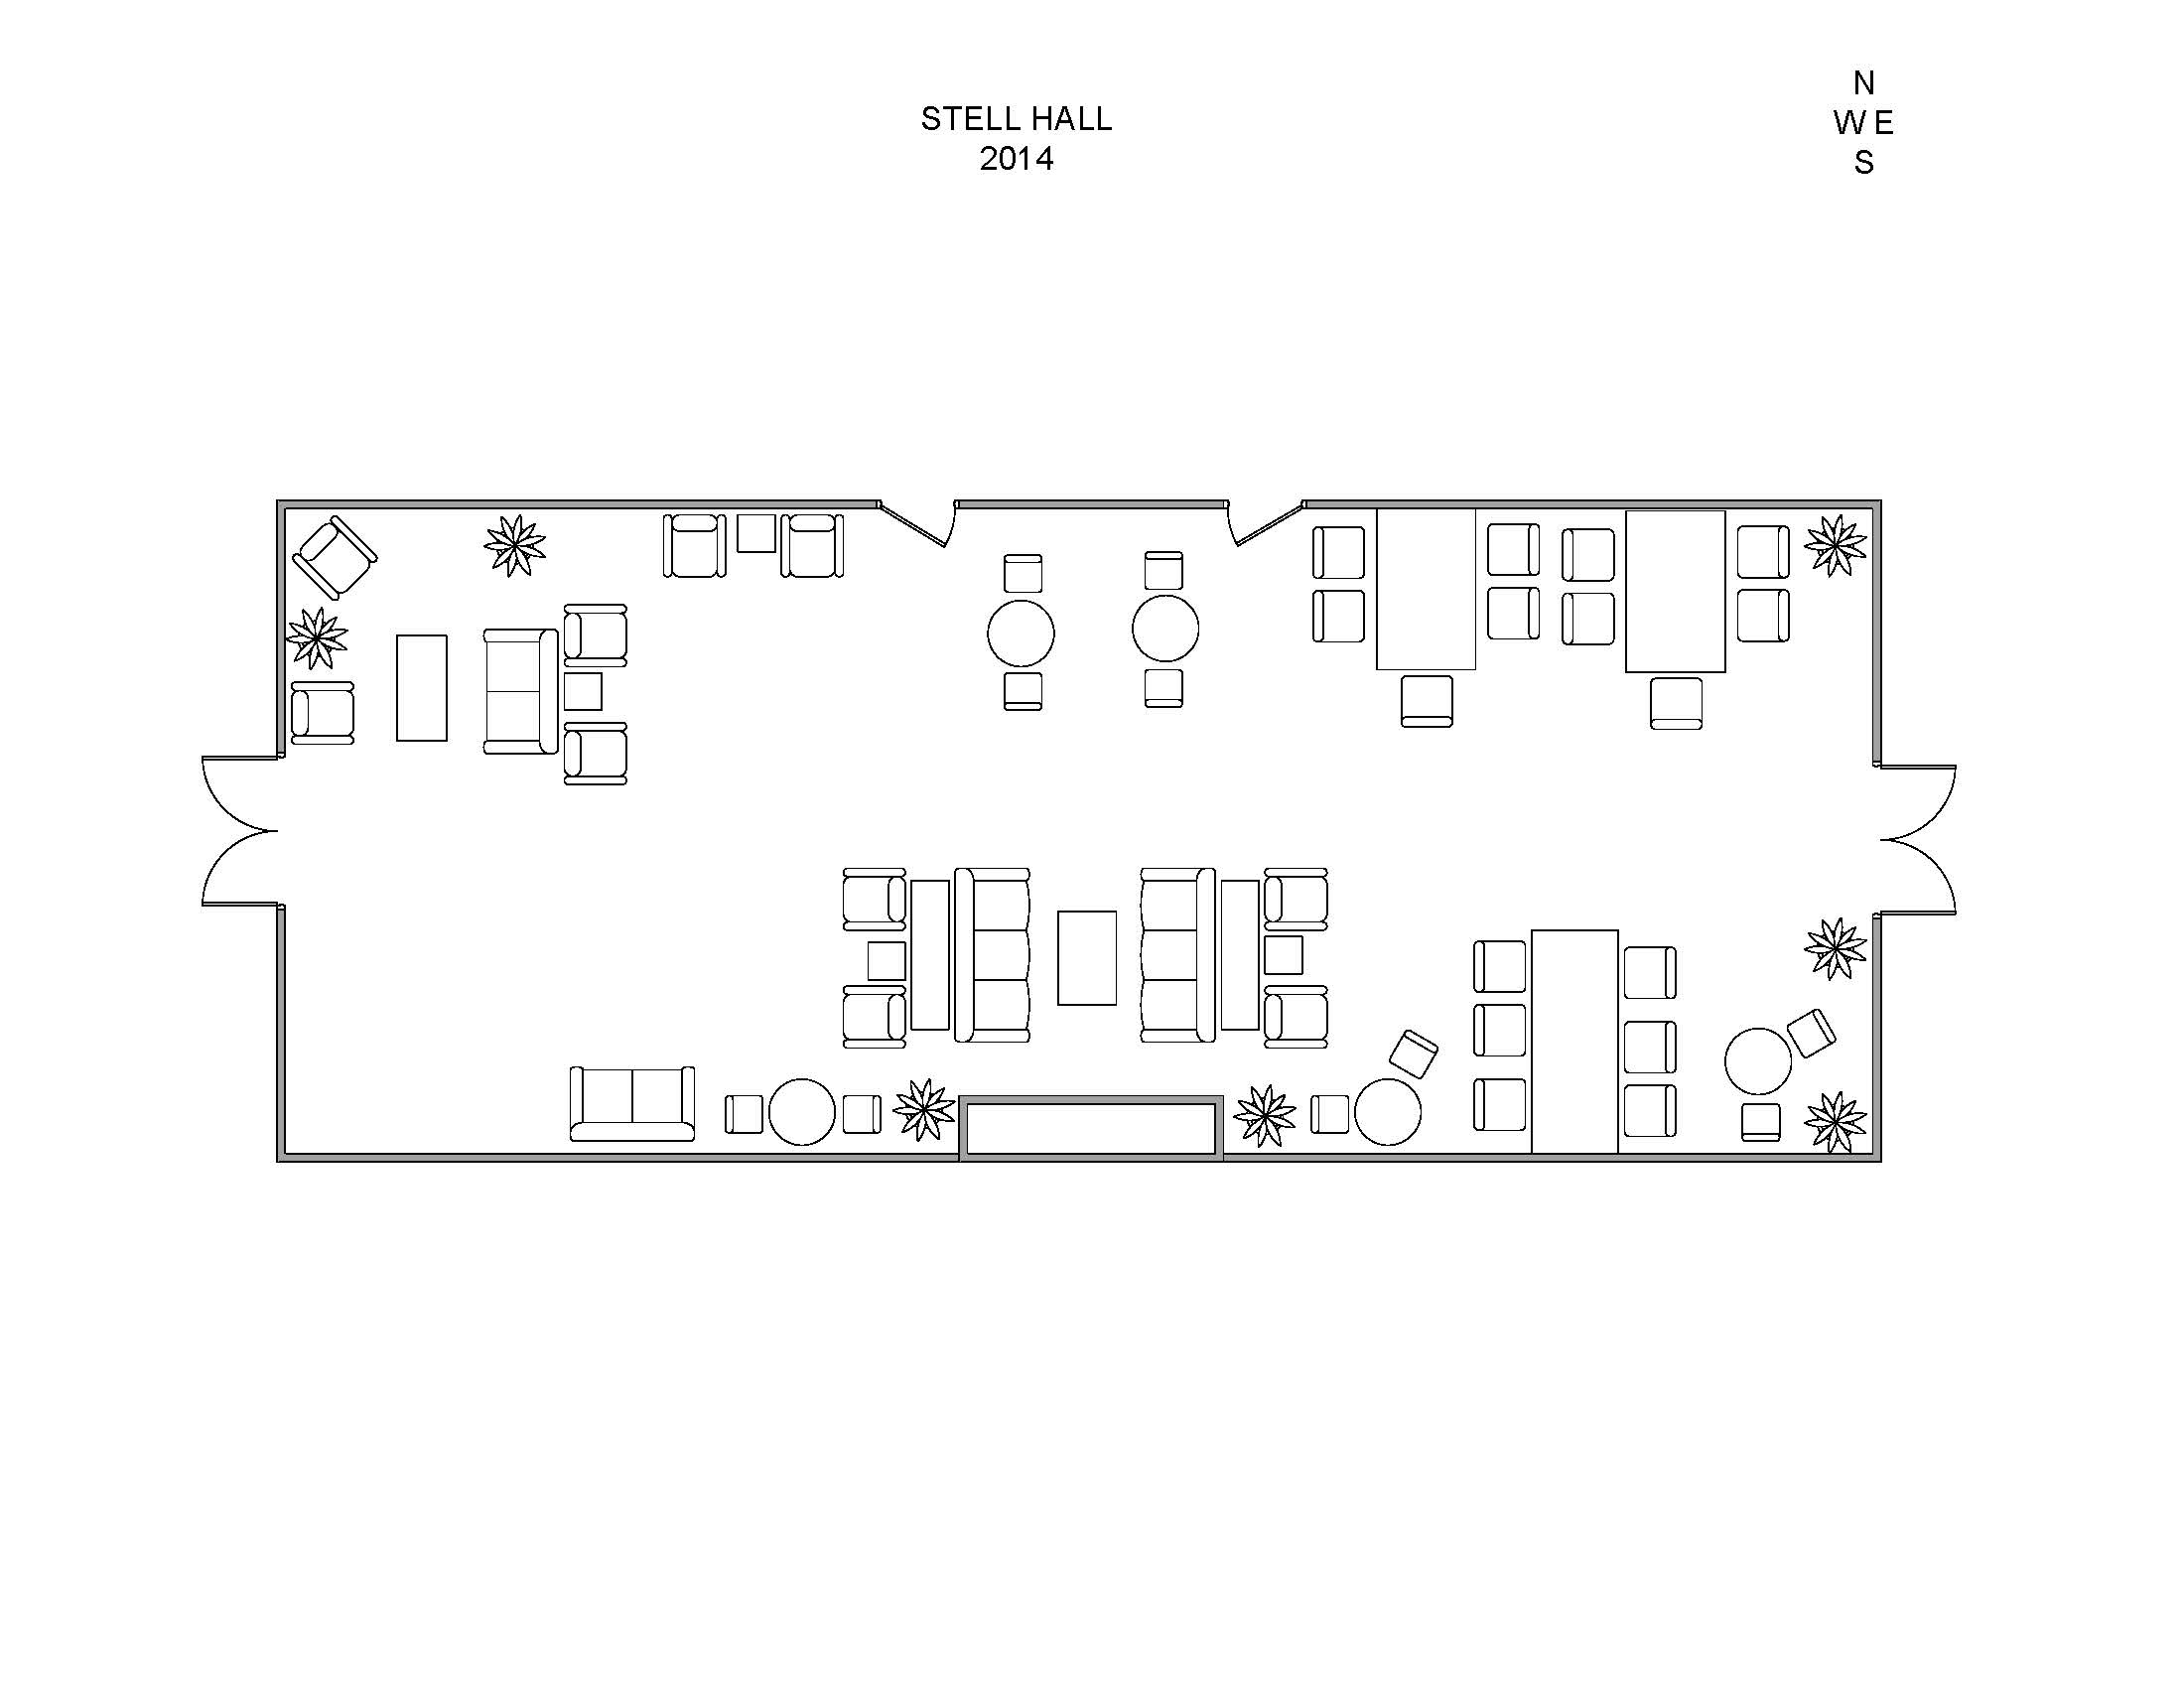 Tuck Events & Facilities :: Stell Hall Diagrams